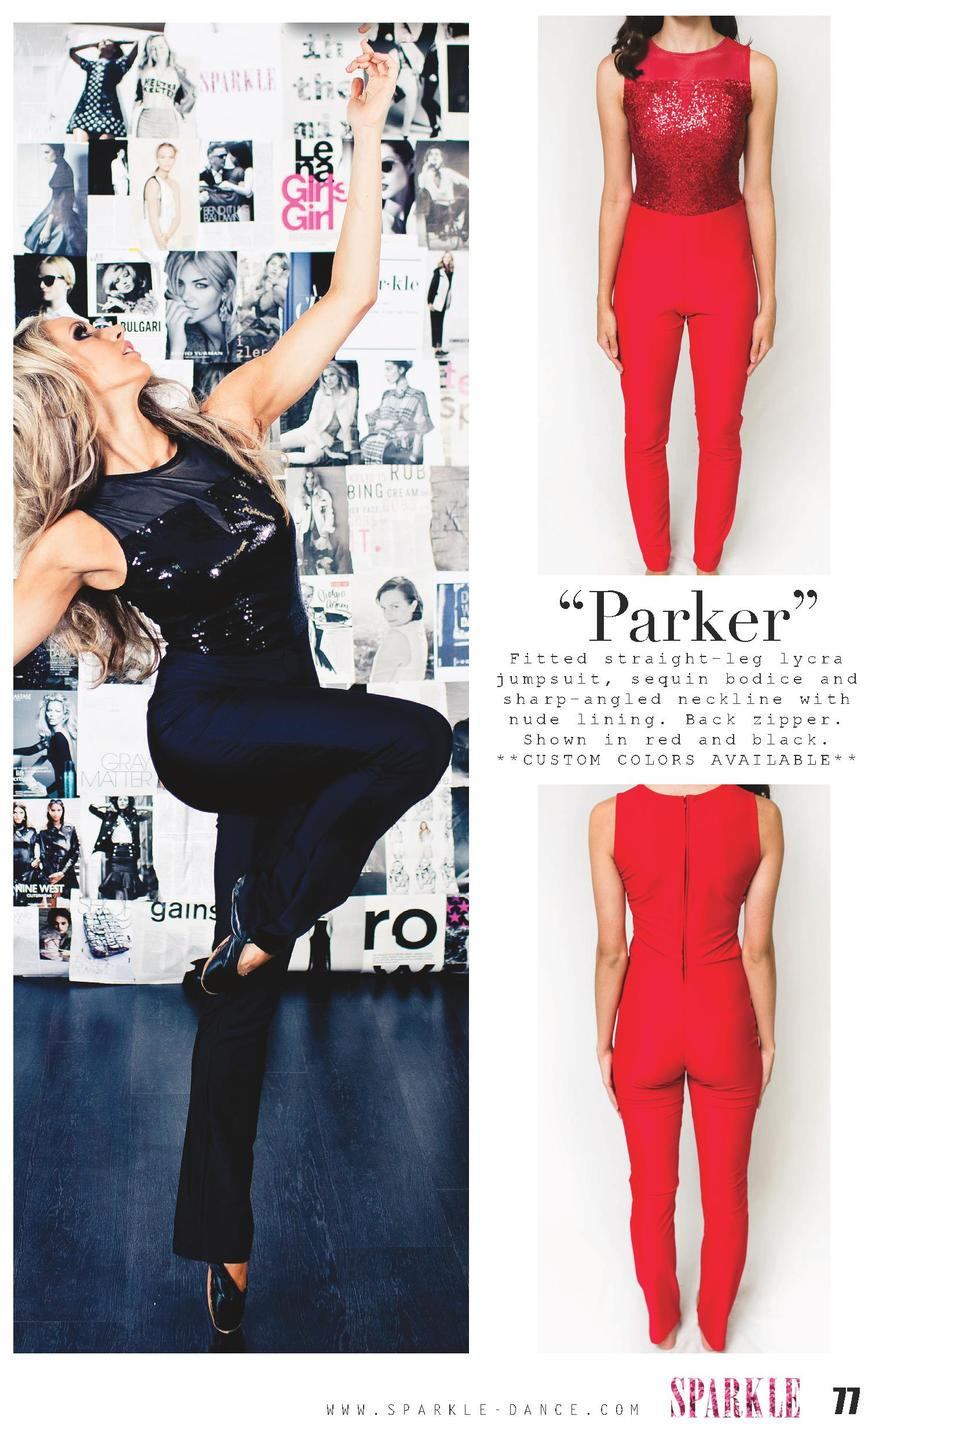 Parker     Fitted straight-leg lycra jumpsuit, sequin bodice and sharp-angled neckline with nude lining. Back zipper. S...